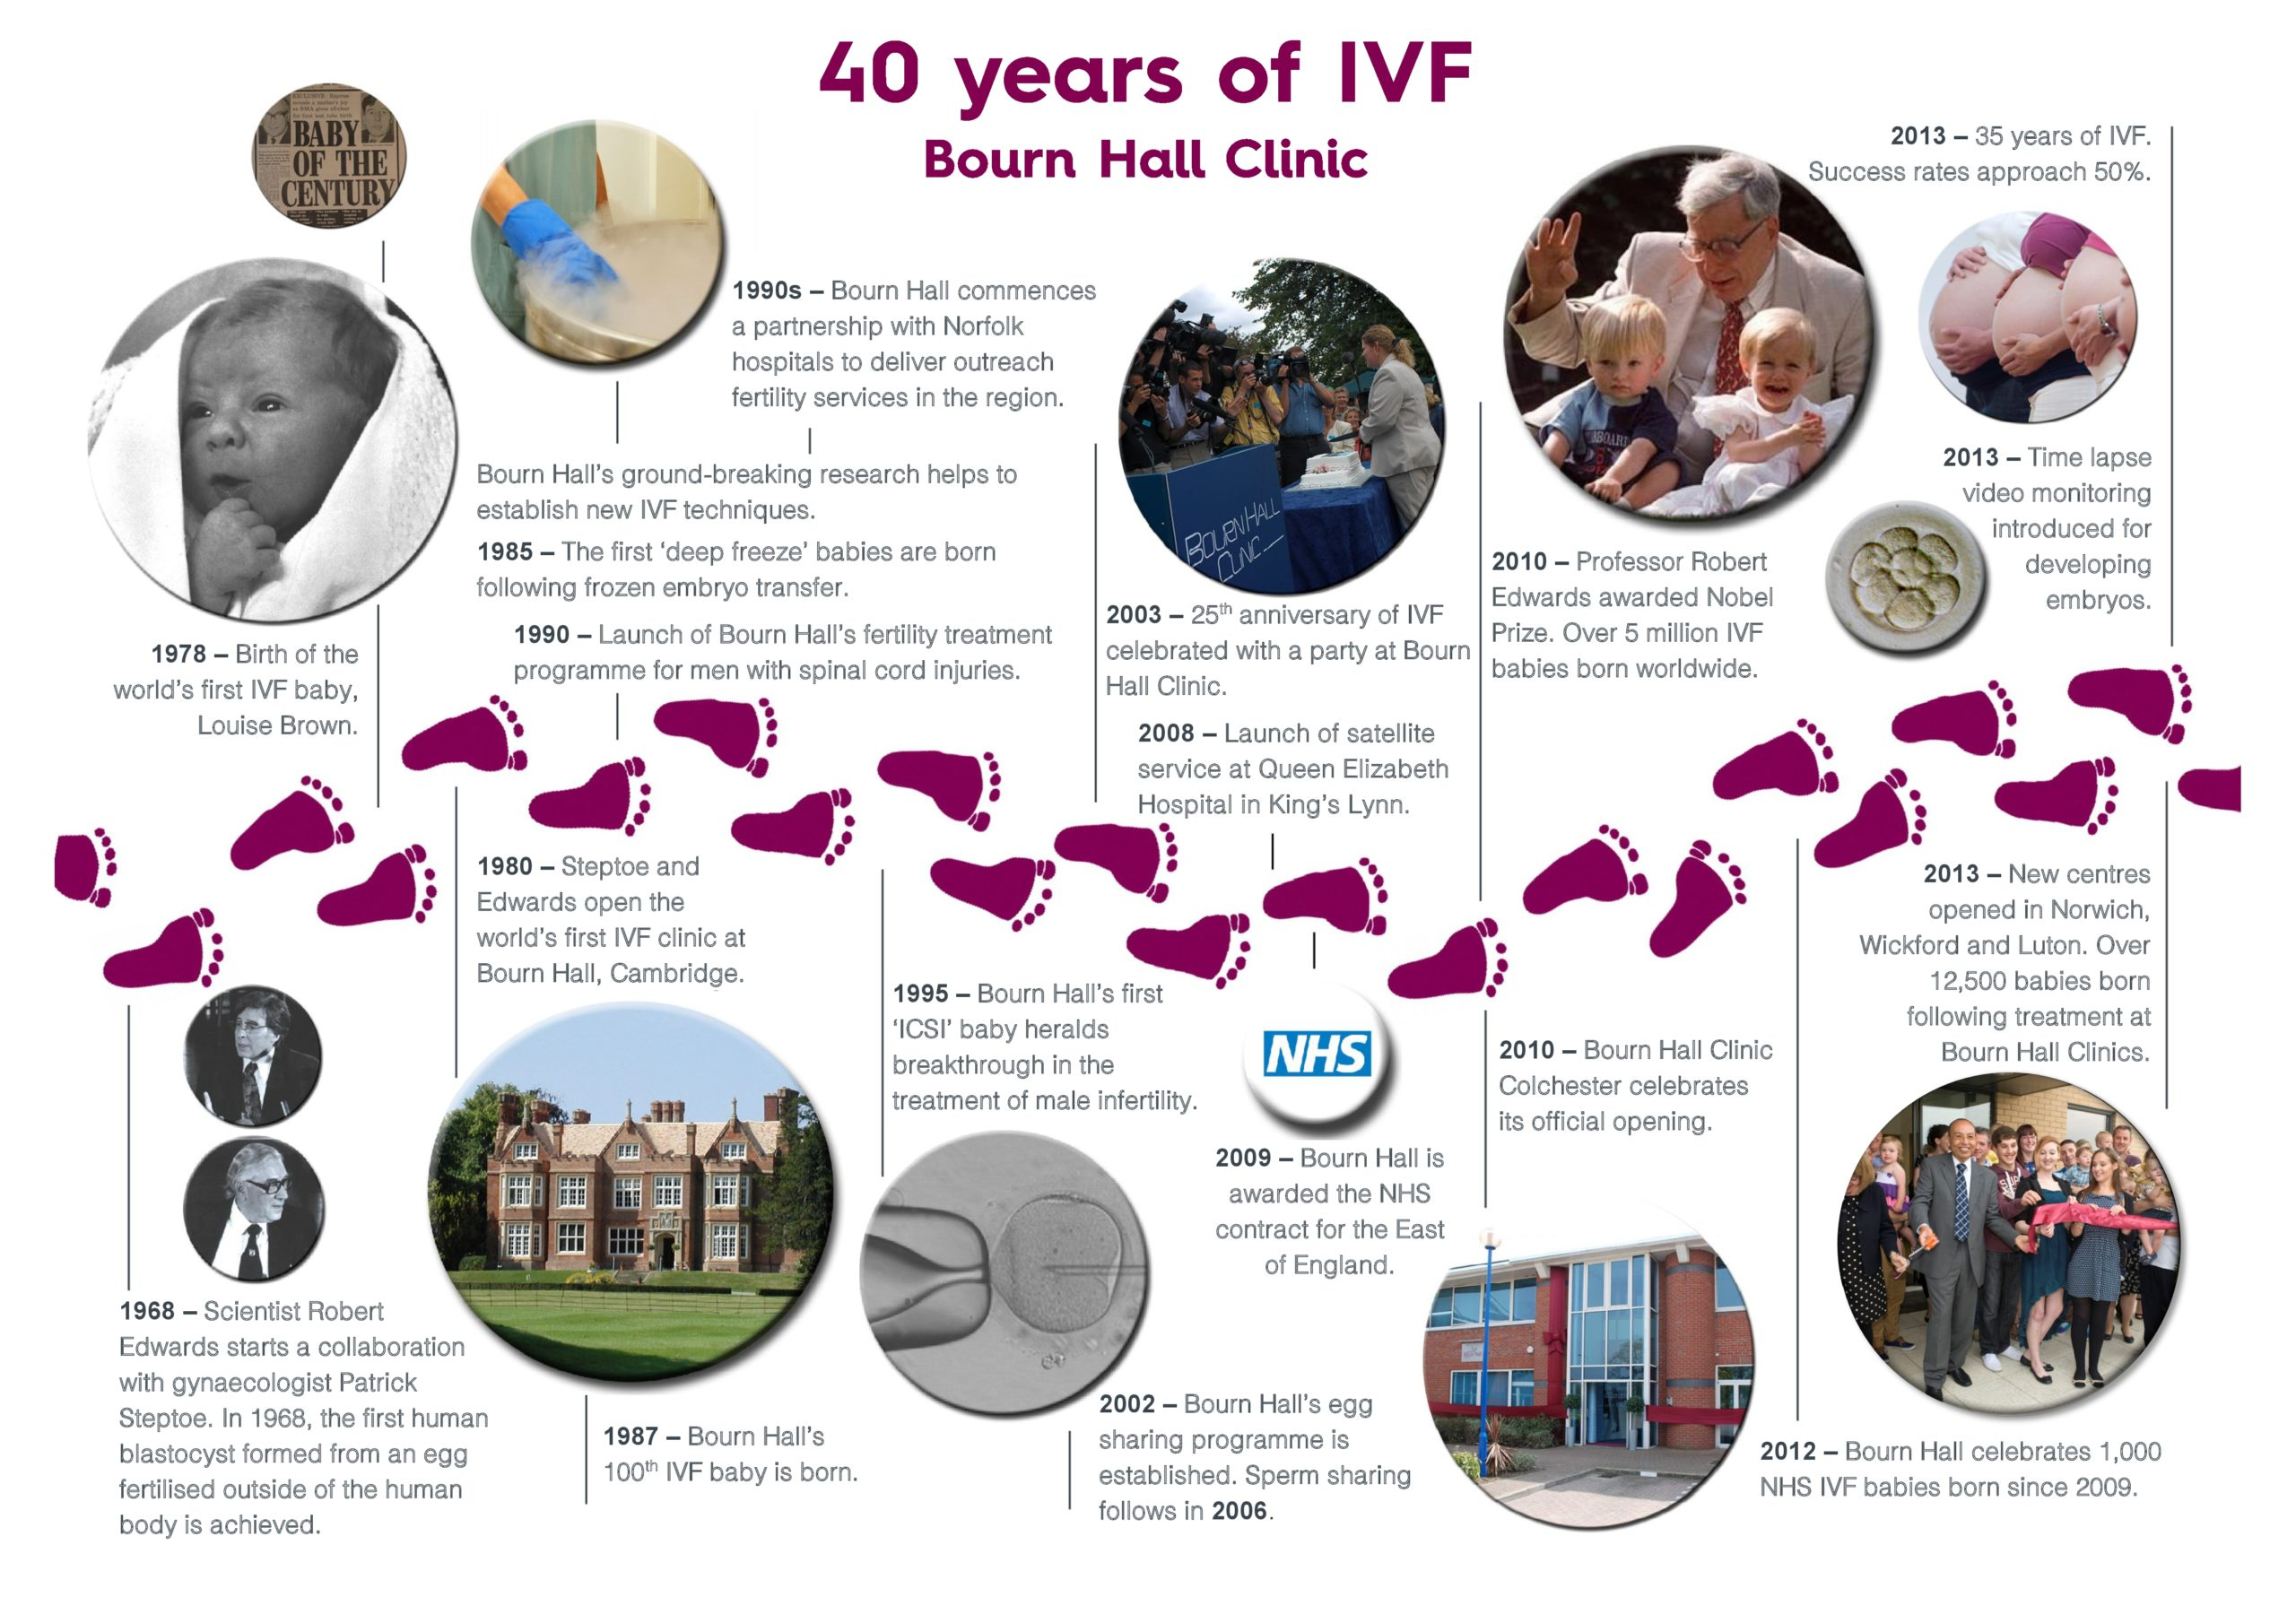 40 years of IVF timeline Part I